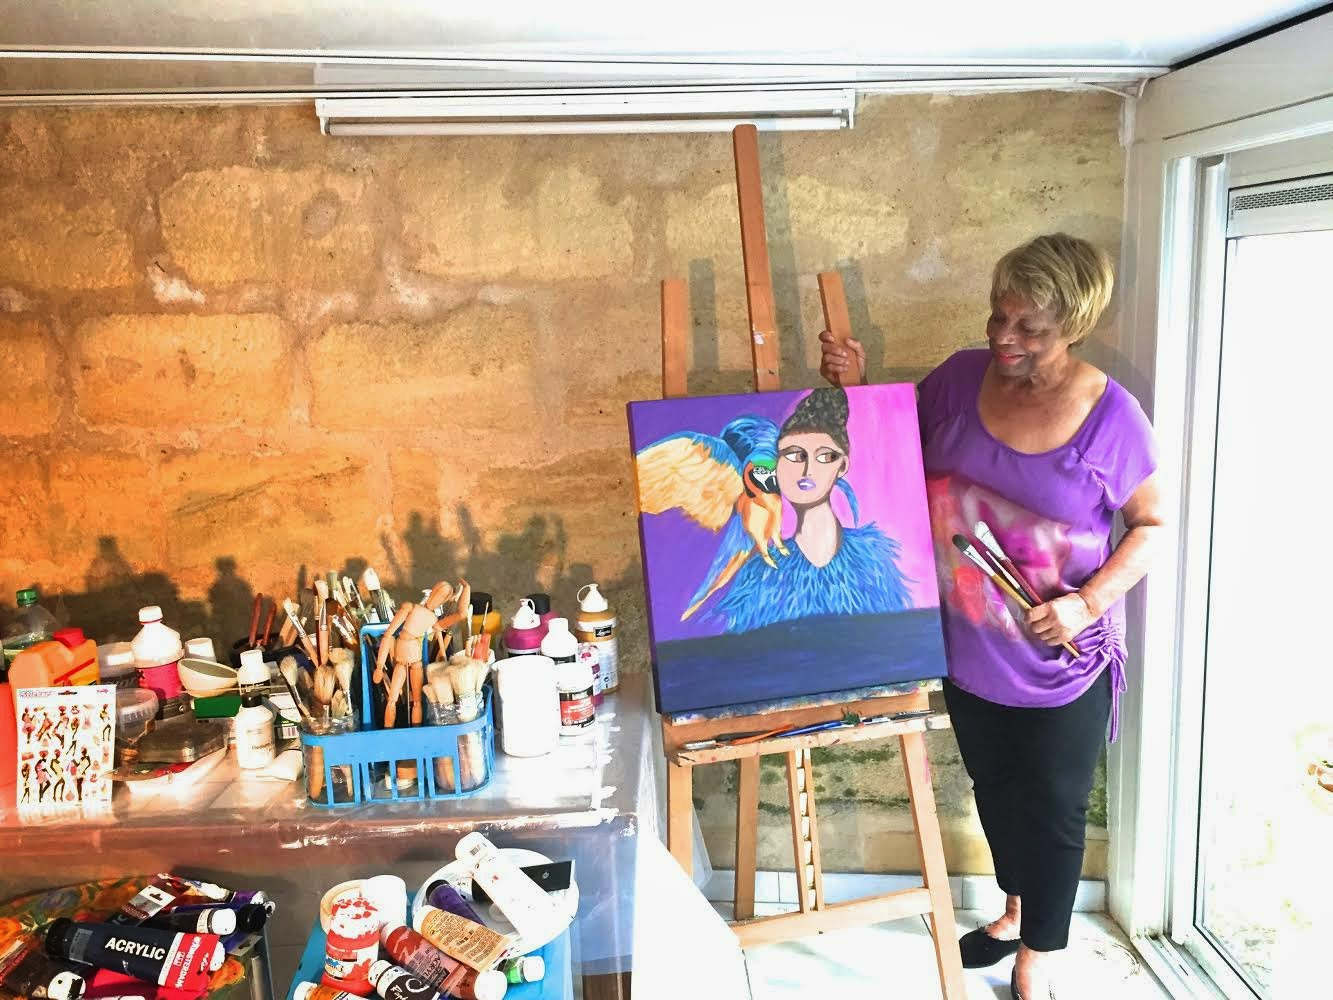 artist Shirley Monestier in her studio in Bordeaux, France